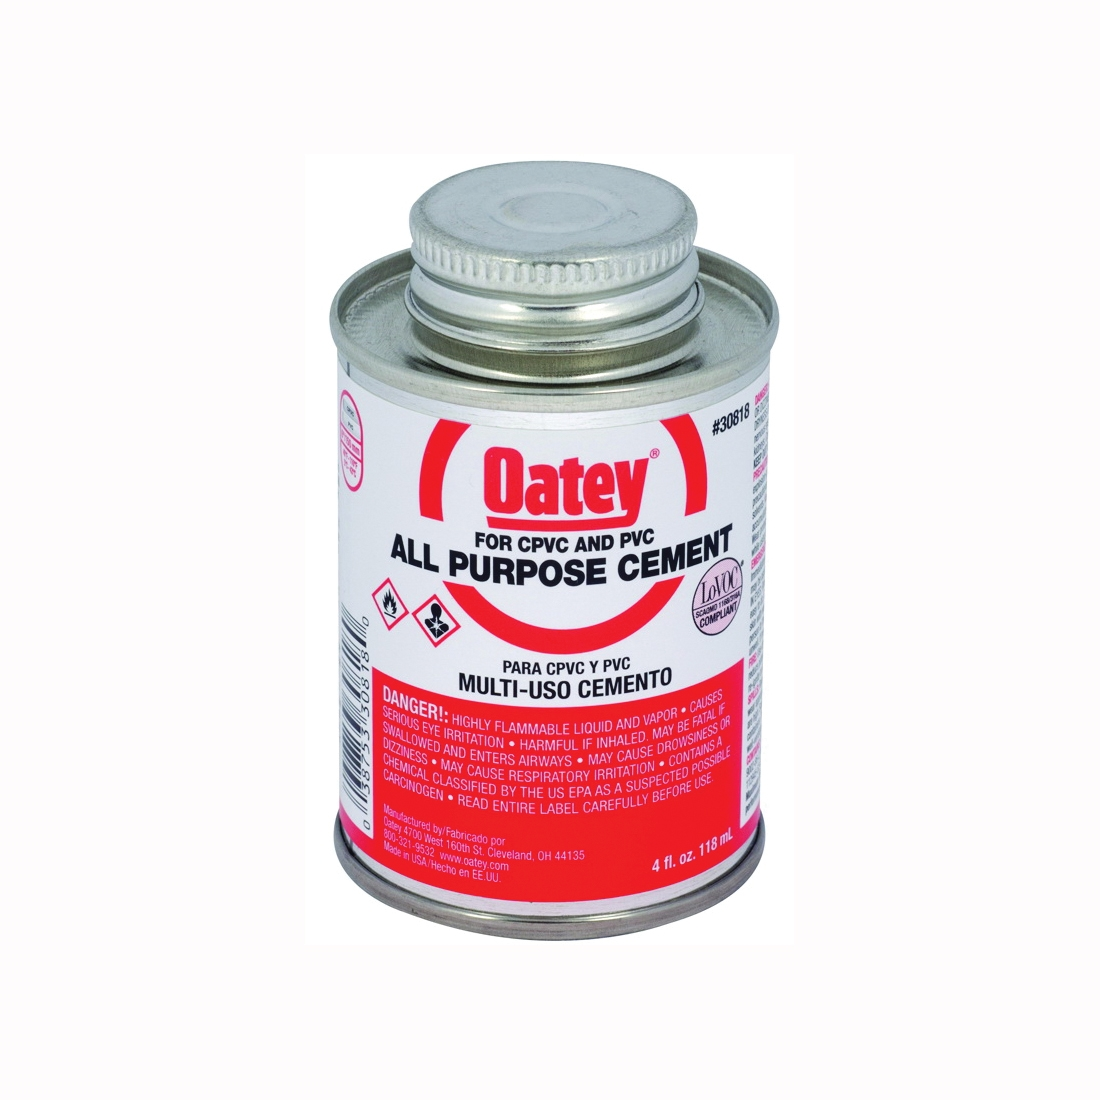 Picture of Oatey 30818 Solvent Cement, 4 oz, Can, Liquid, Milky Clear